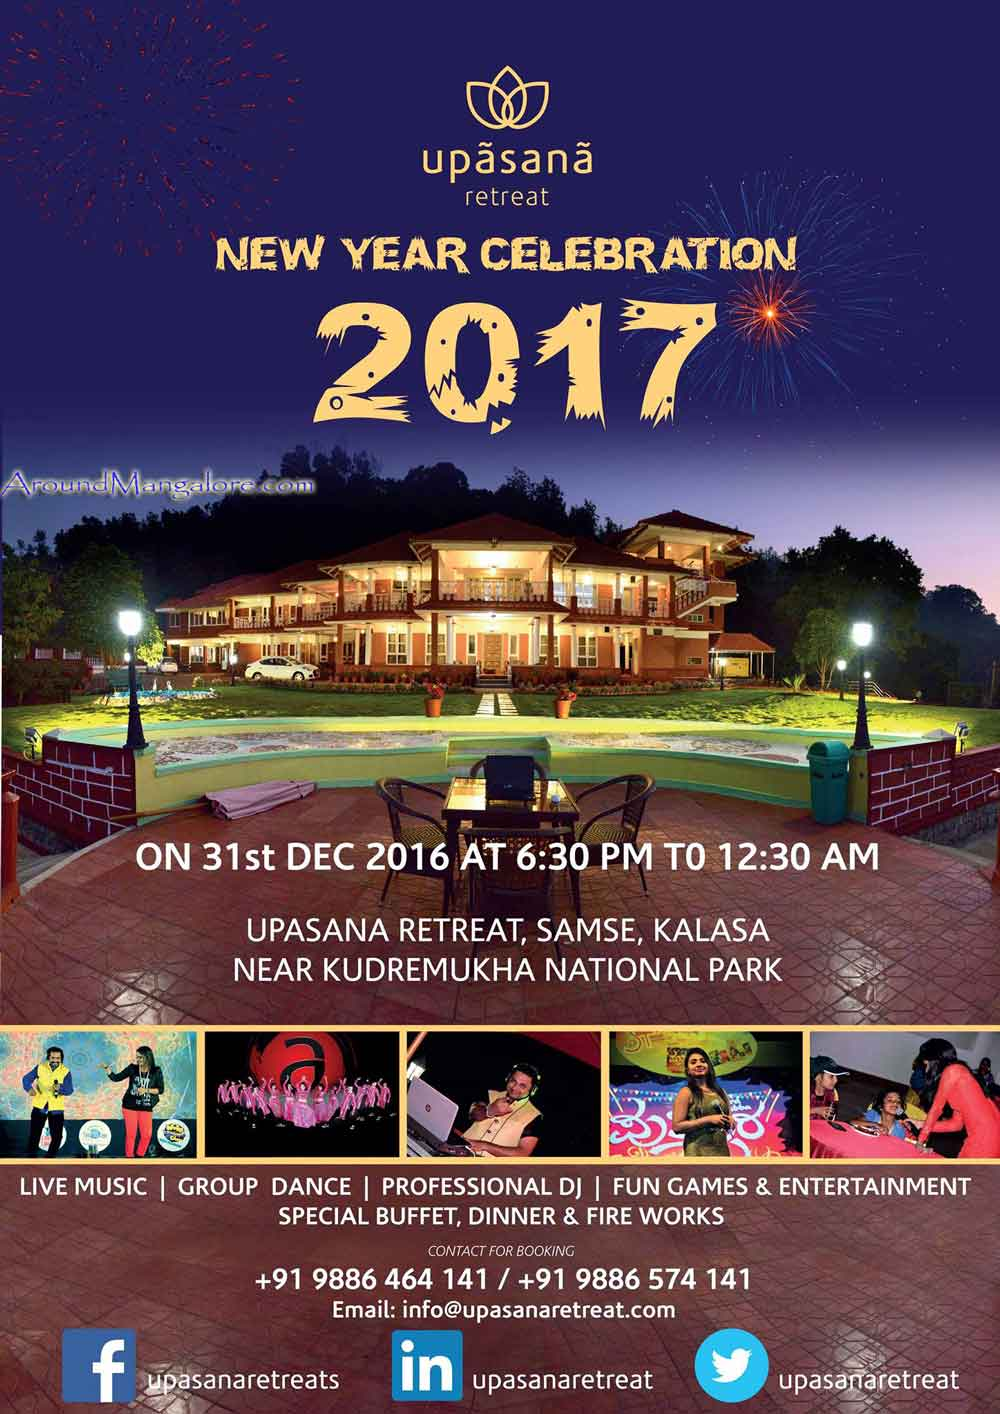 New Year Celebration 2017 - Upasana Retreat, Kalasa